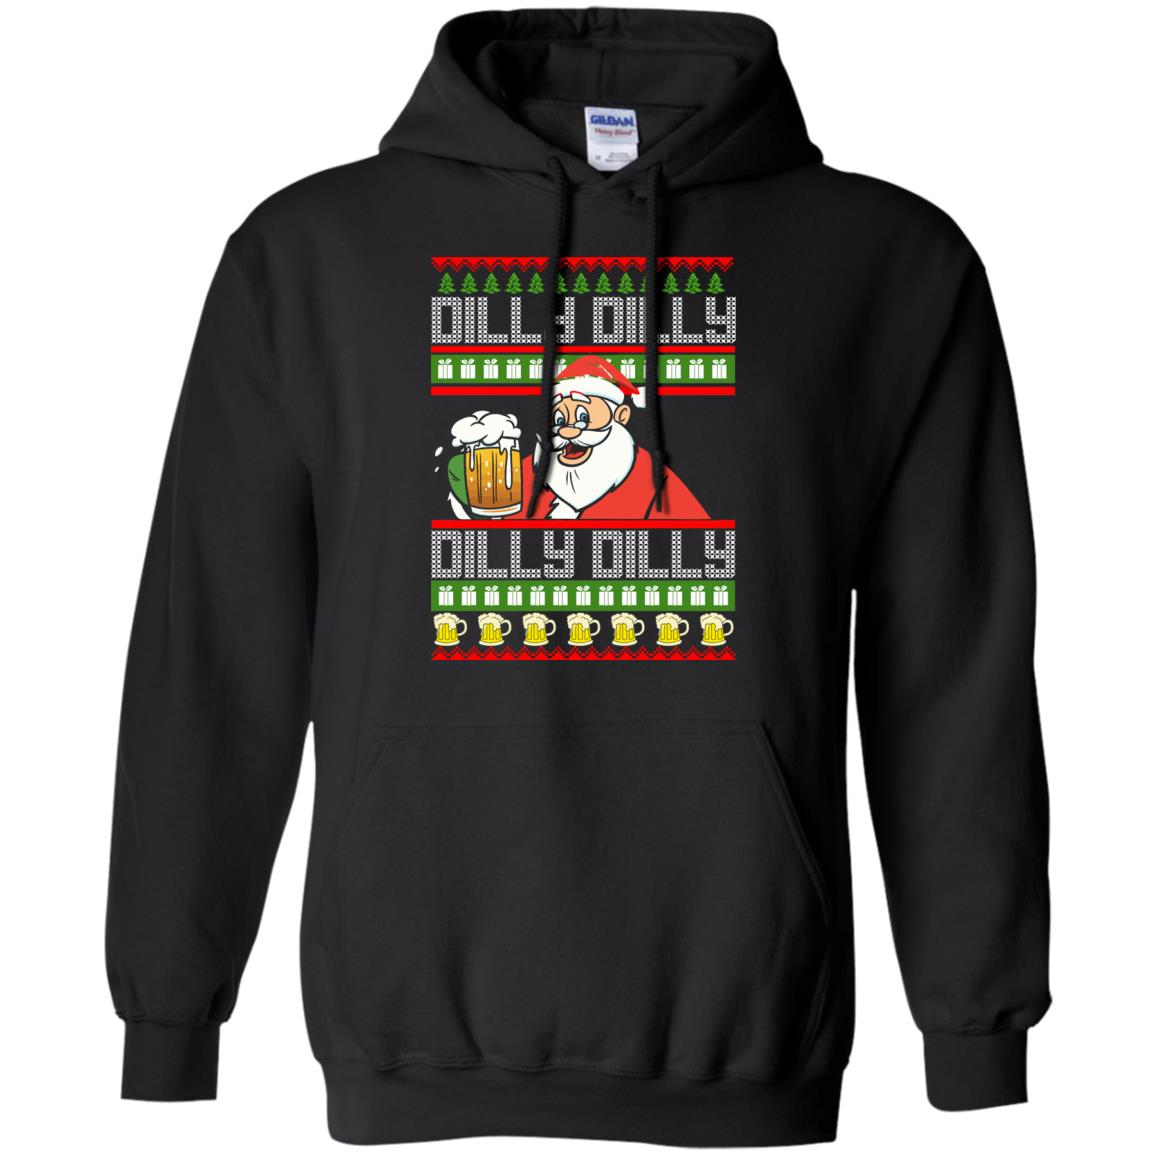 image 4185 - Dilly Dilly Christmas Sweater, Shirt, Hoodie